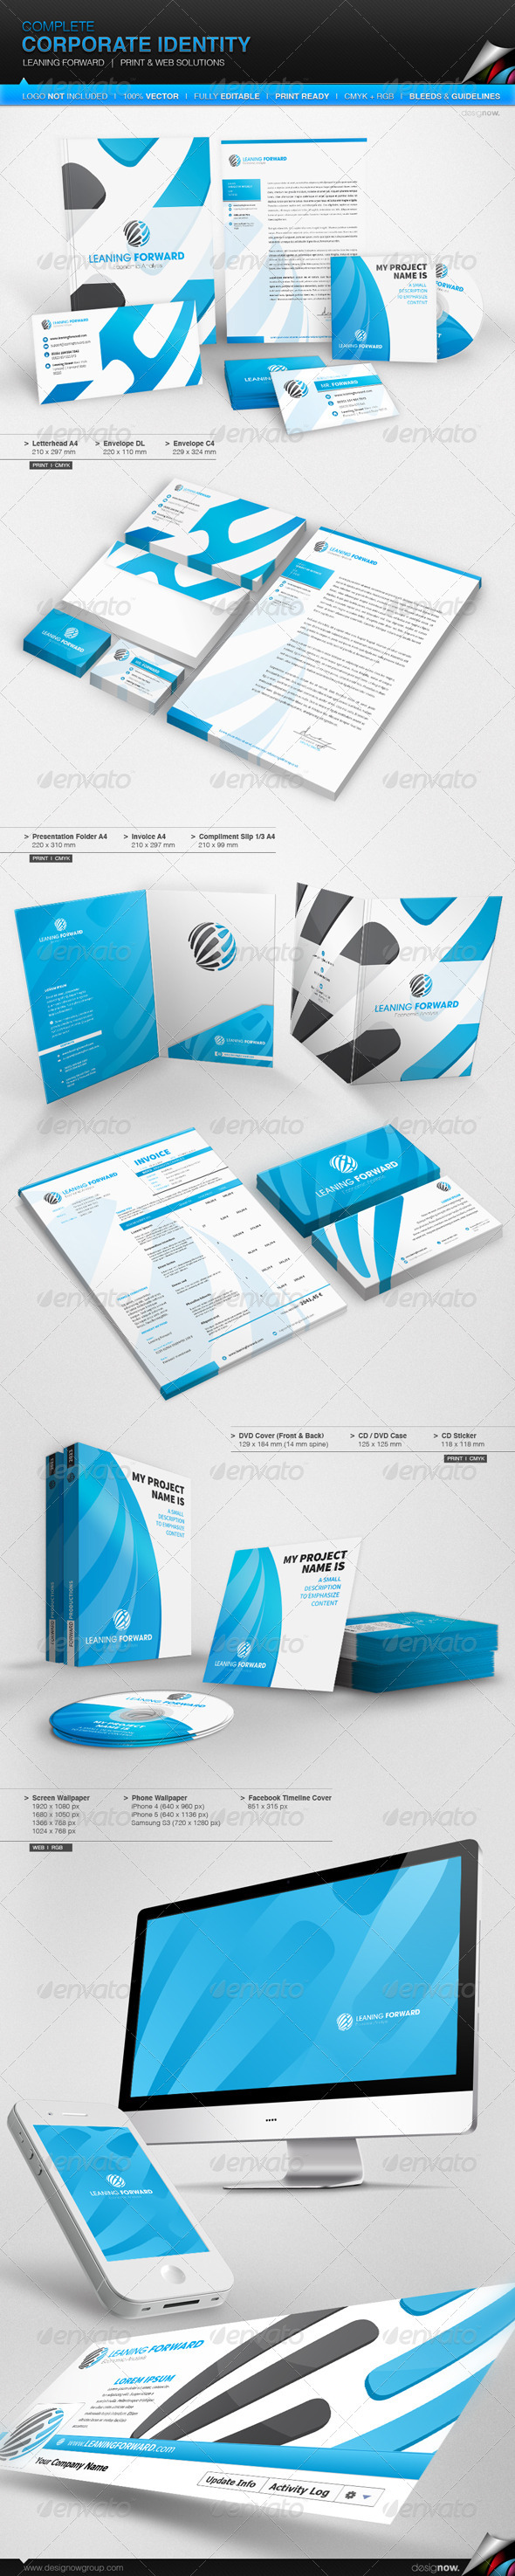 Corporate Identity - Leaning Forward - Stationery Print Templates